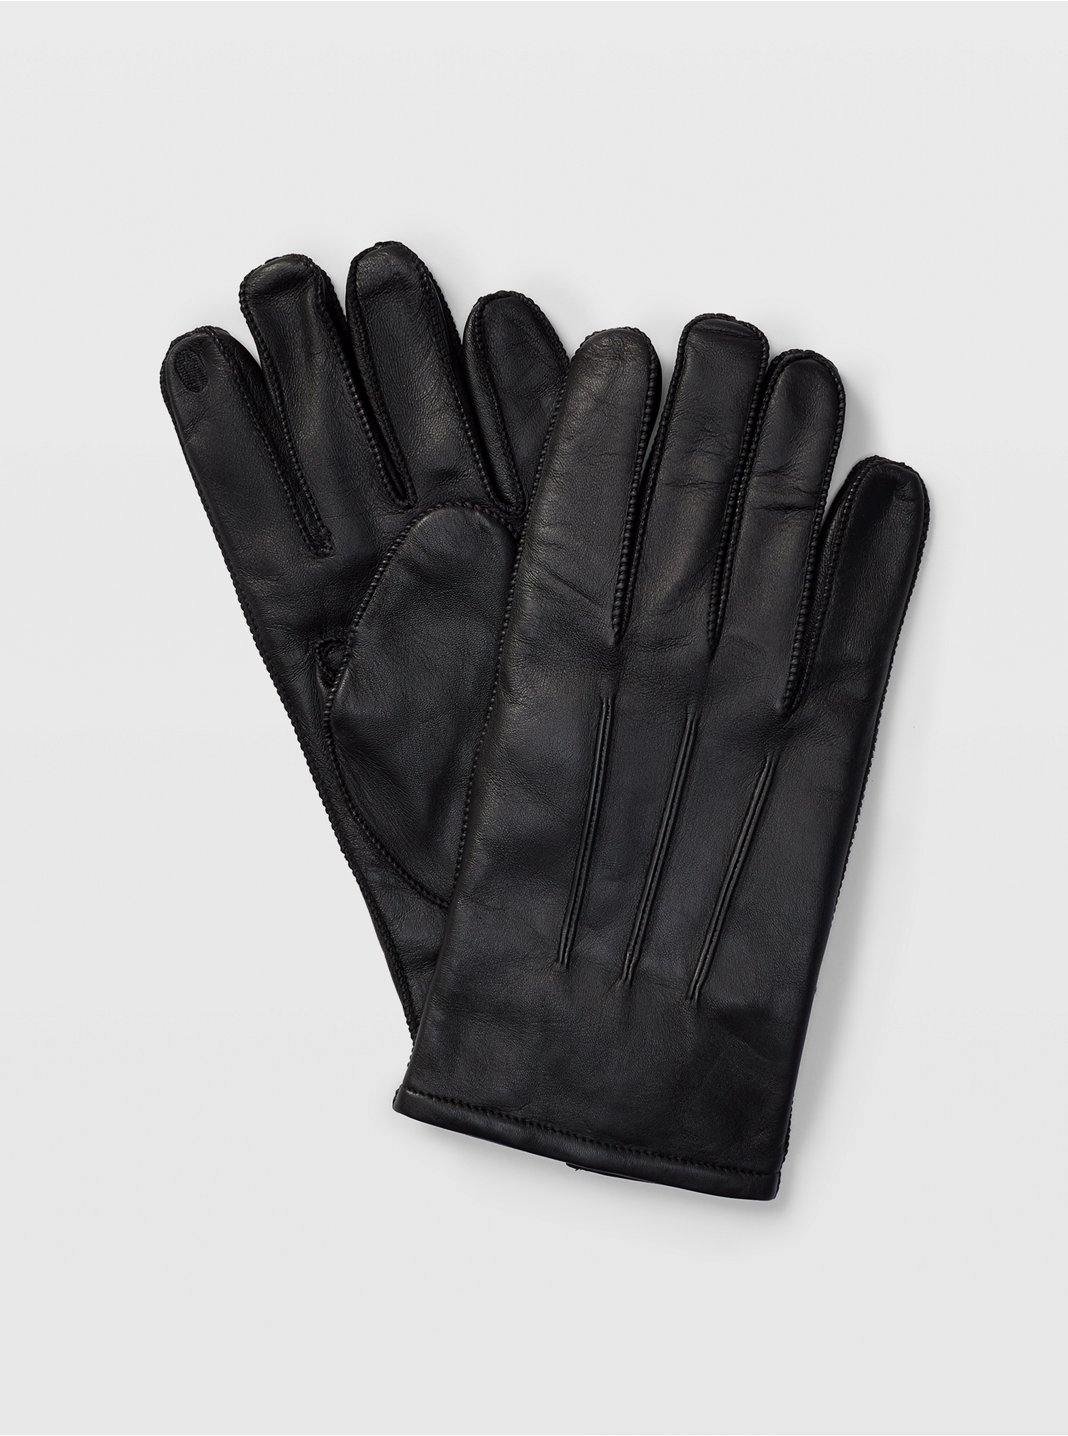 Tech-Enabled Leather Gloves